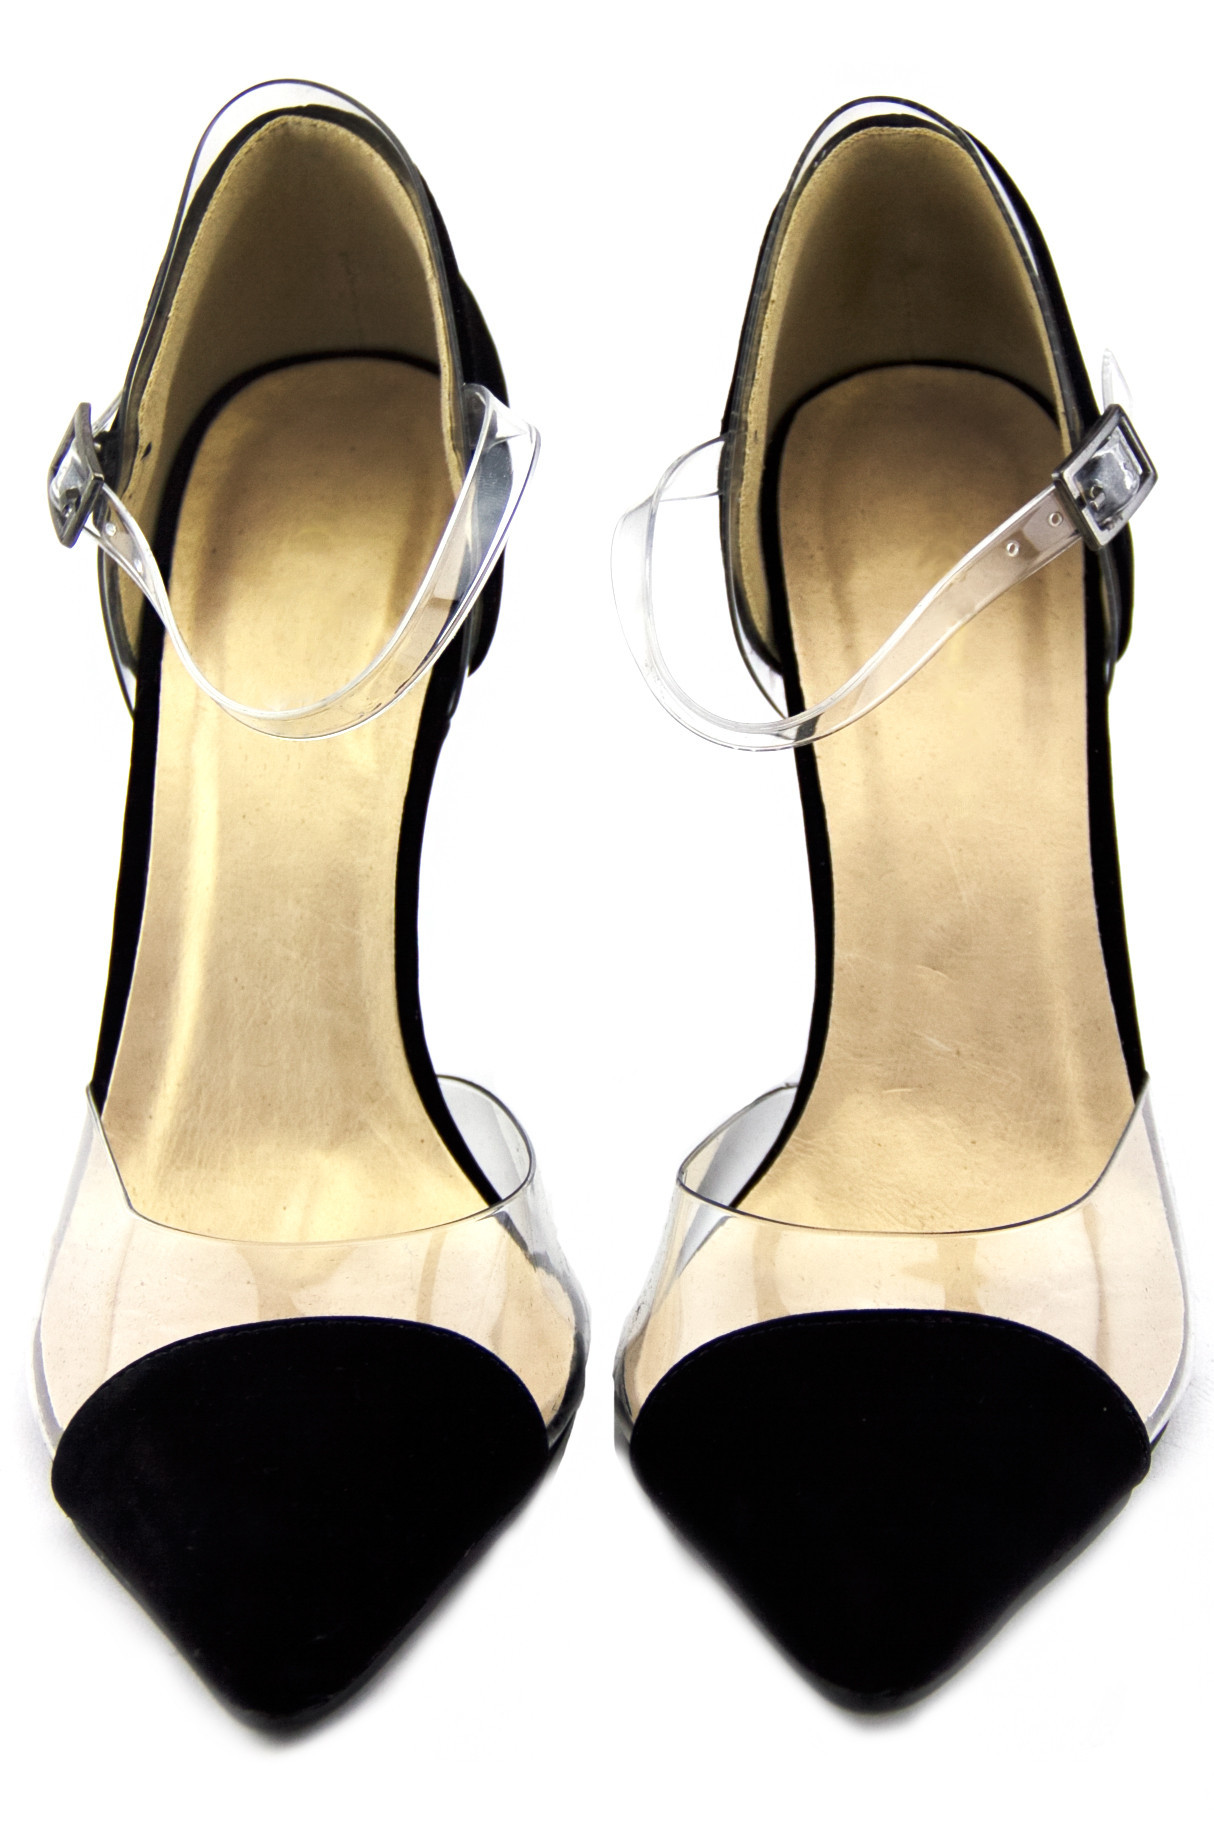 CLEAR CONTRAST POINTY HIGH HEEL PUMP | Haute & Rebellious